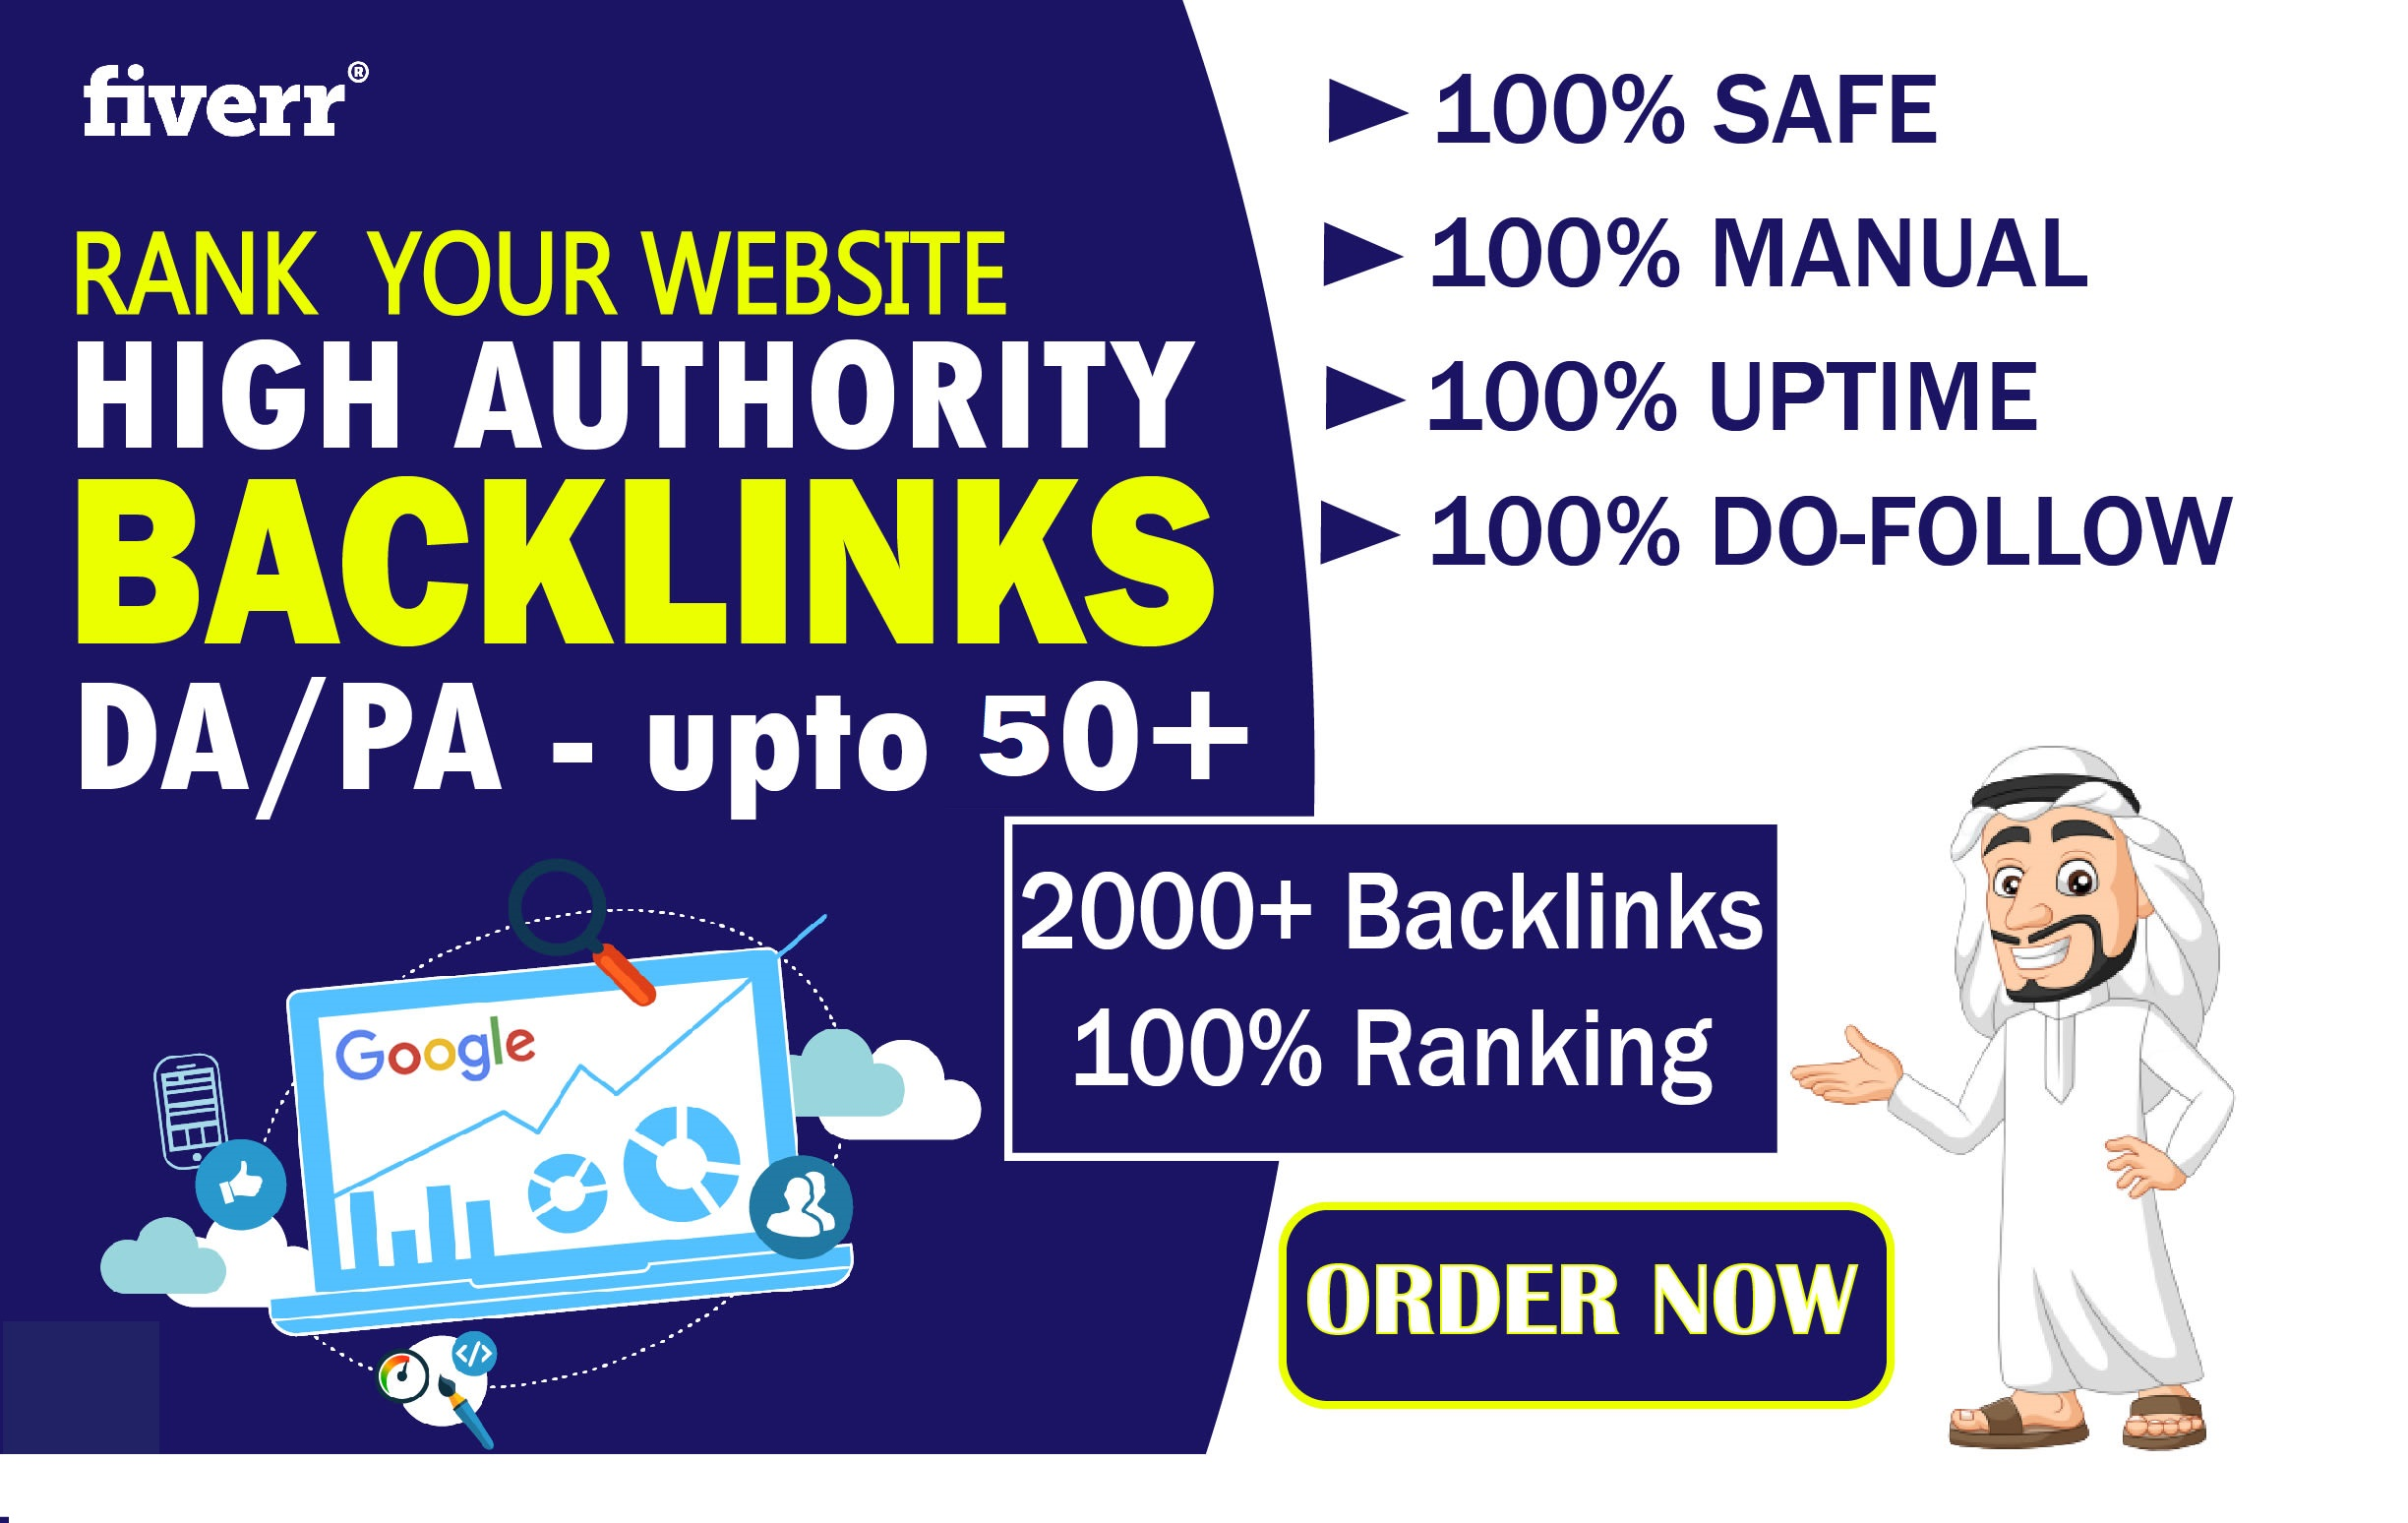 GET FREE 500 backlinks BUY MANUALLY DA 50+ PA 60+ web 2.0 2000 Powerful web2.0 backlinks